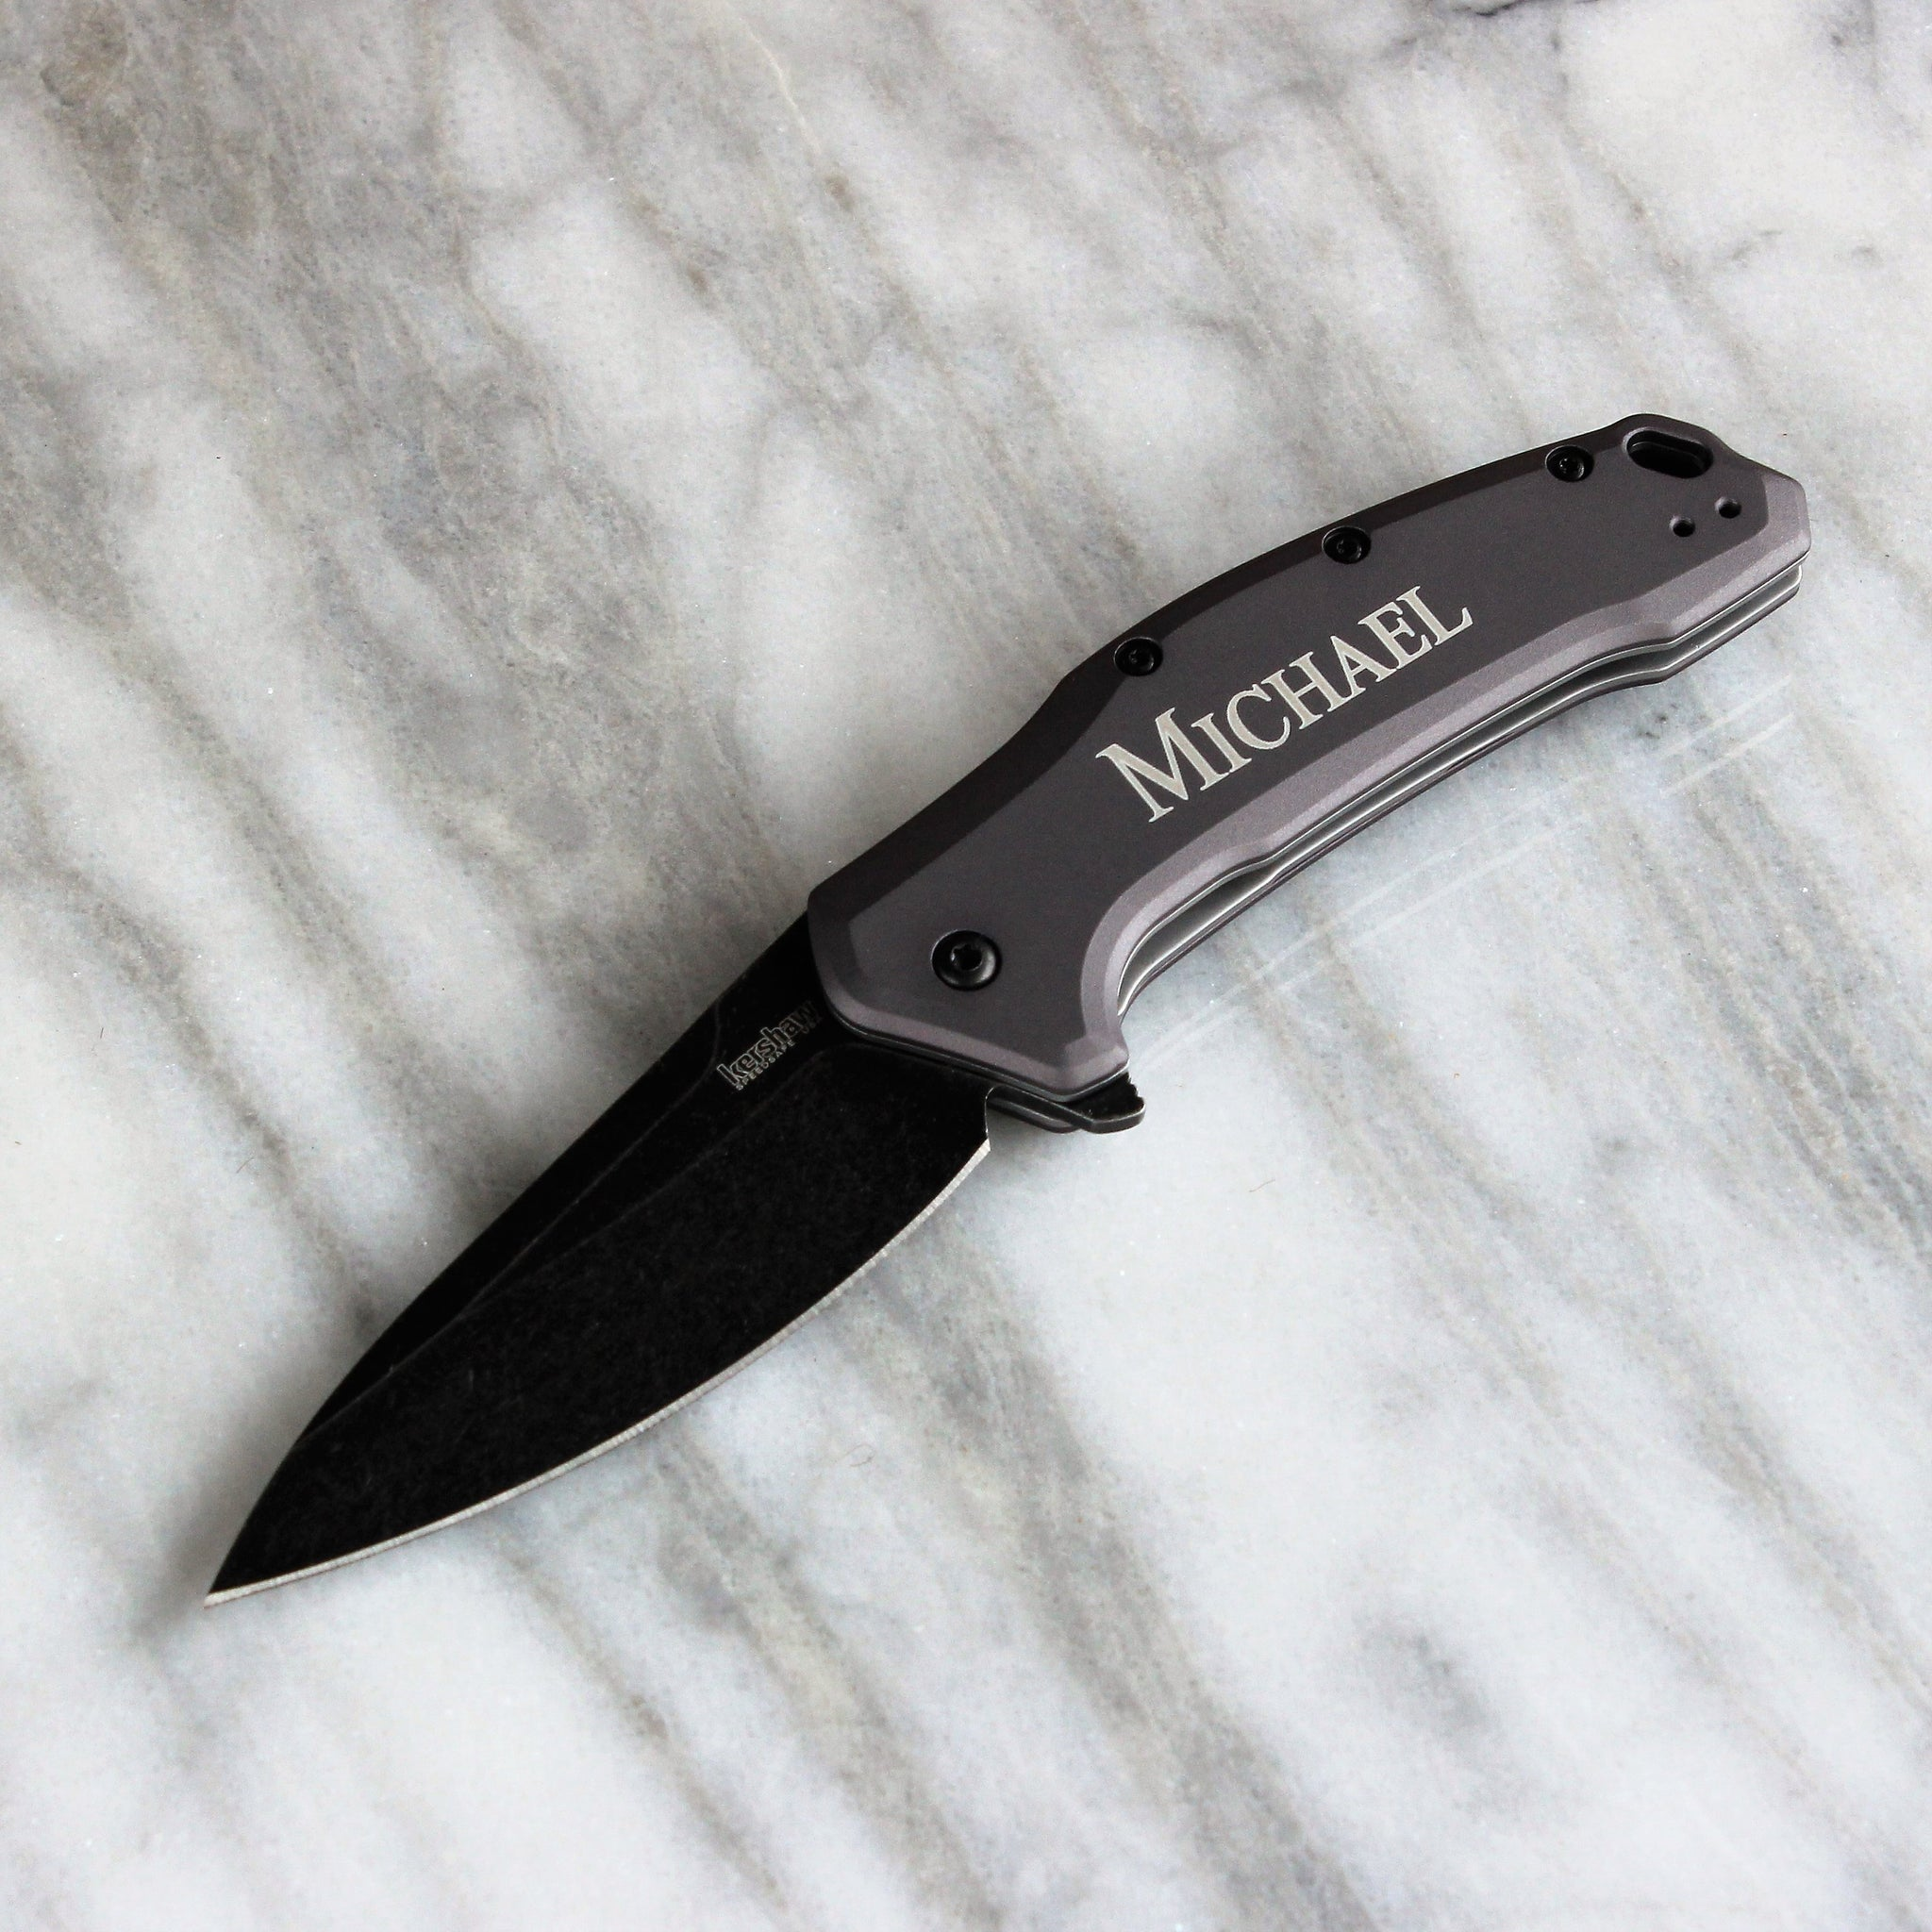 Kershaw Ken Onion Blur Black Serrated Knife - Personalized Groomsmen Gift,  Engraved Birthday Gifts, Best Man, Engraved, Custom Knives